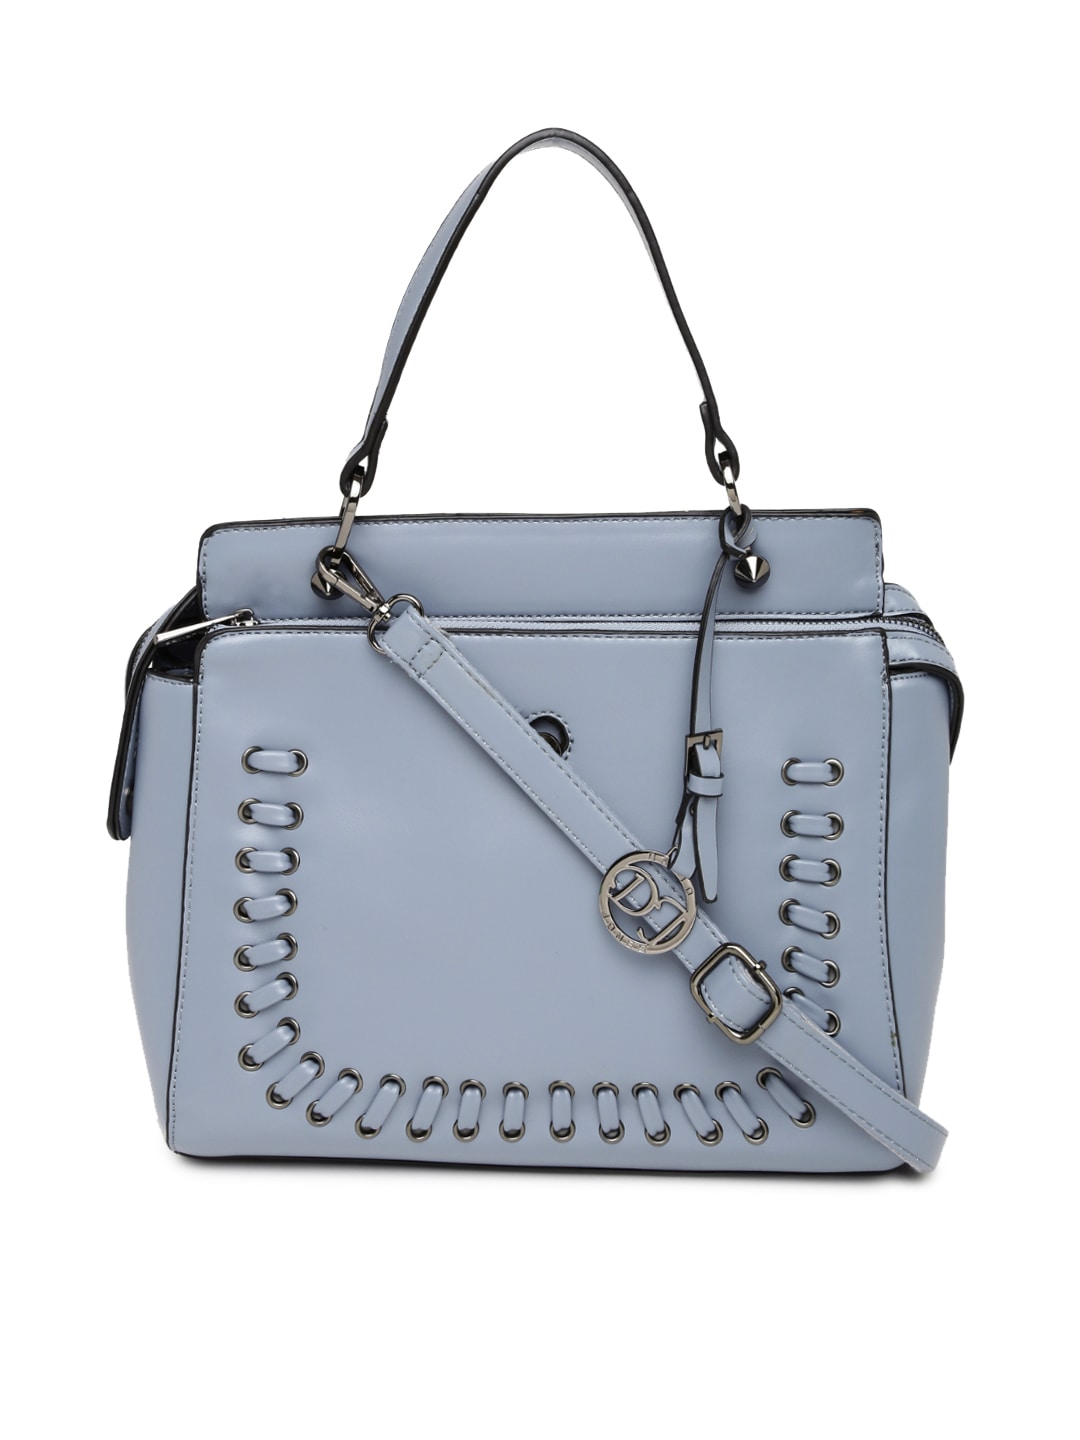 fe077b16b4 David jones dj403-blue Blue Handbag - Best Price in India | priceiq.in